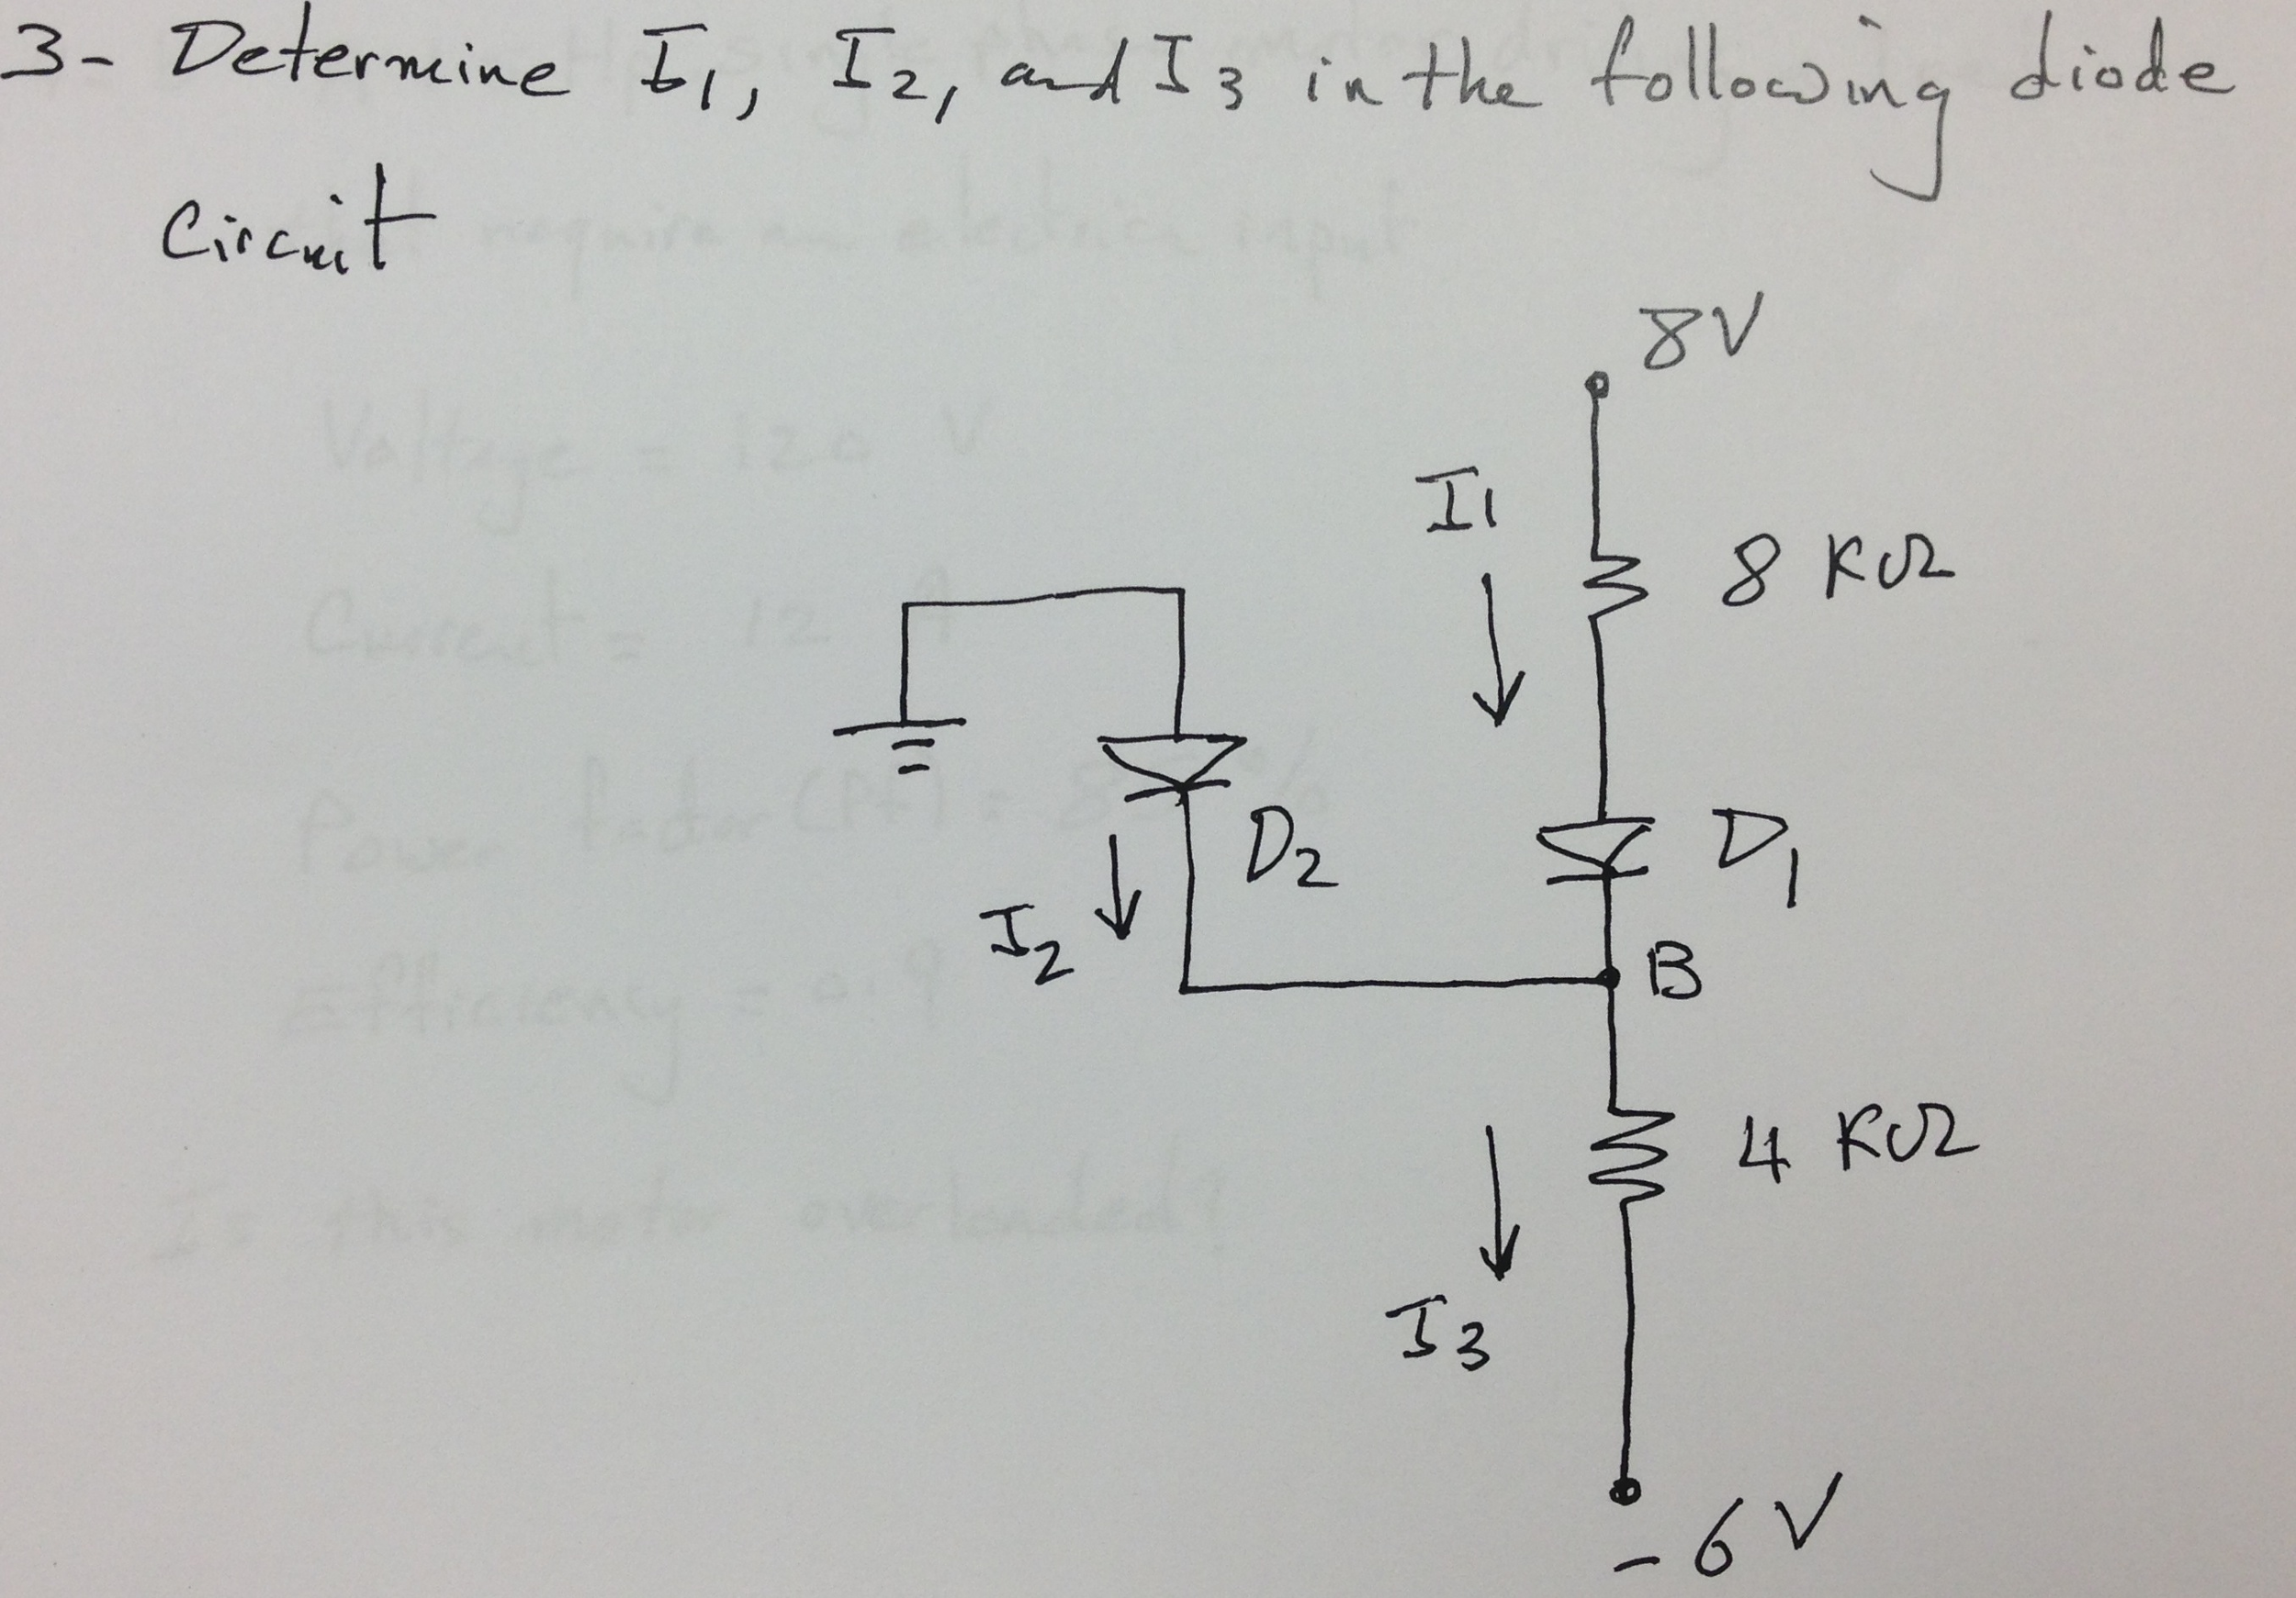 Determine I1, I2, and I3 in the following diode ci